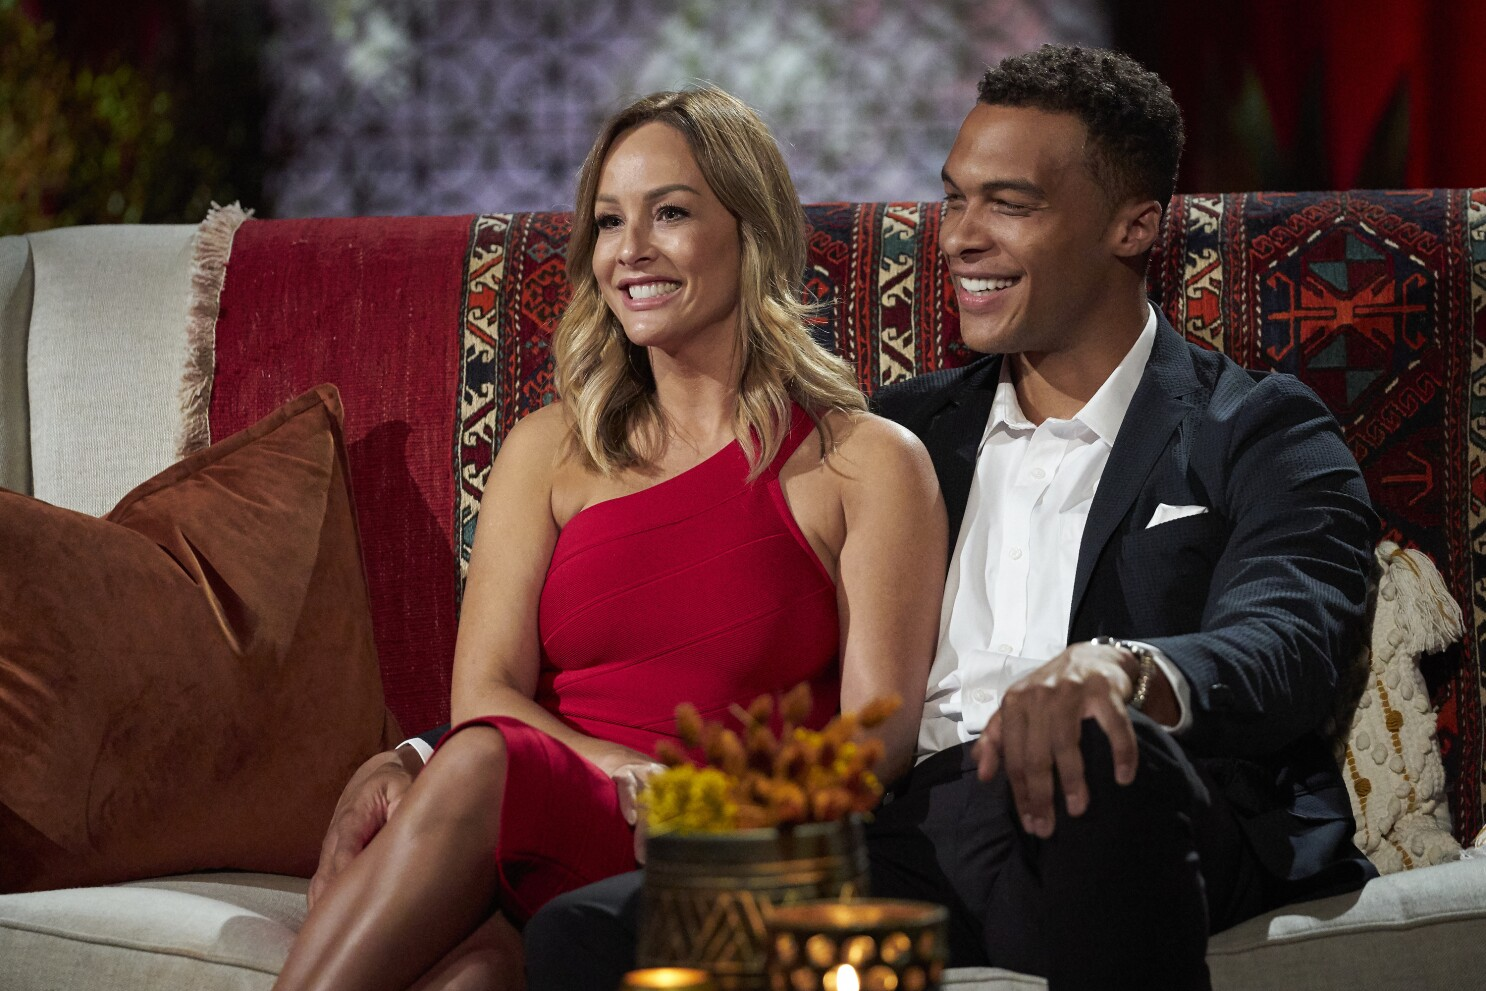 Hot biracial women big ass The Bachelorette Big Brother Fall Short On Race Issues Los Angeles Times